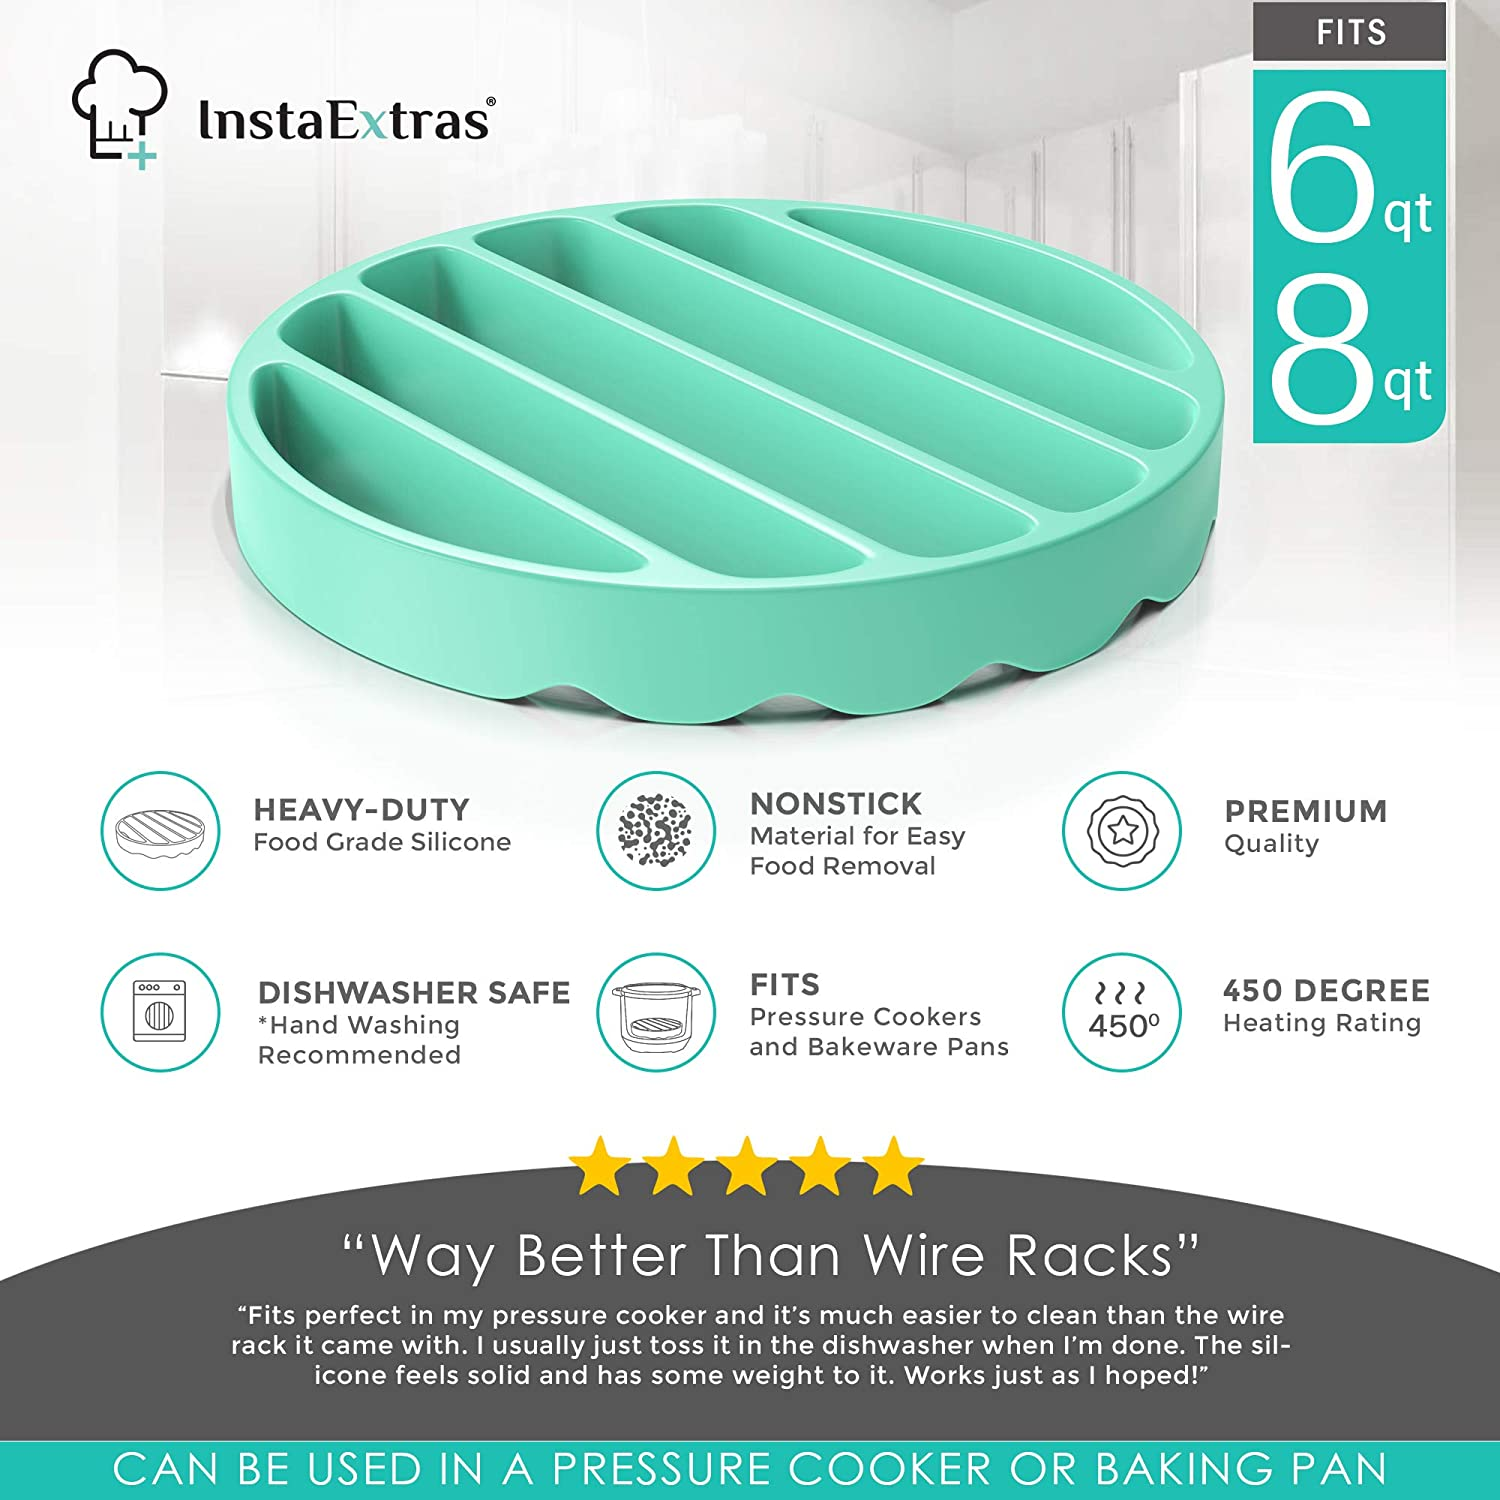 Round Silicon Roasting Accessories Compatible With Oven Crock Pot Trivet Roaster Insert Racks For Cooking Meat Silicone Roasting Rack For Pressure Cooker Baking Instant Pot 6 Qt And 8 Quart